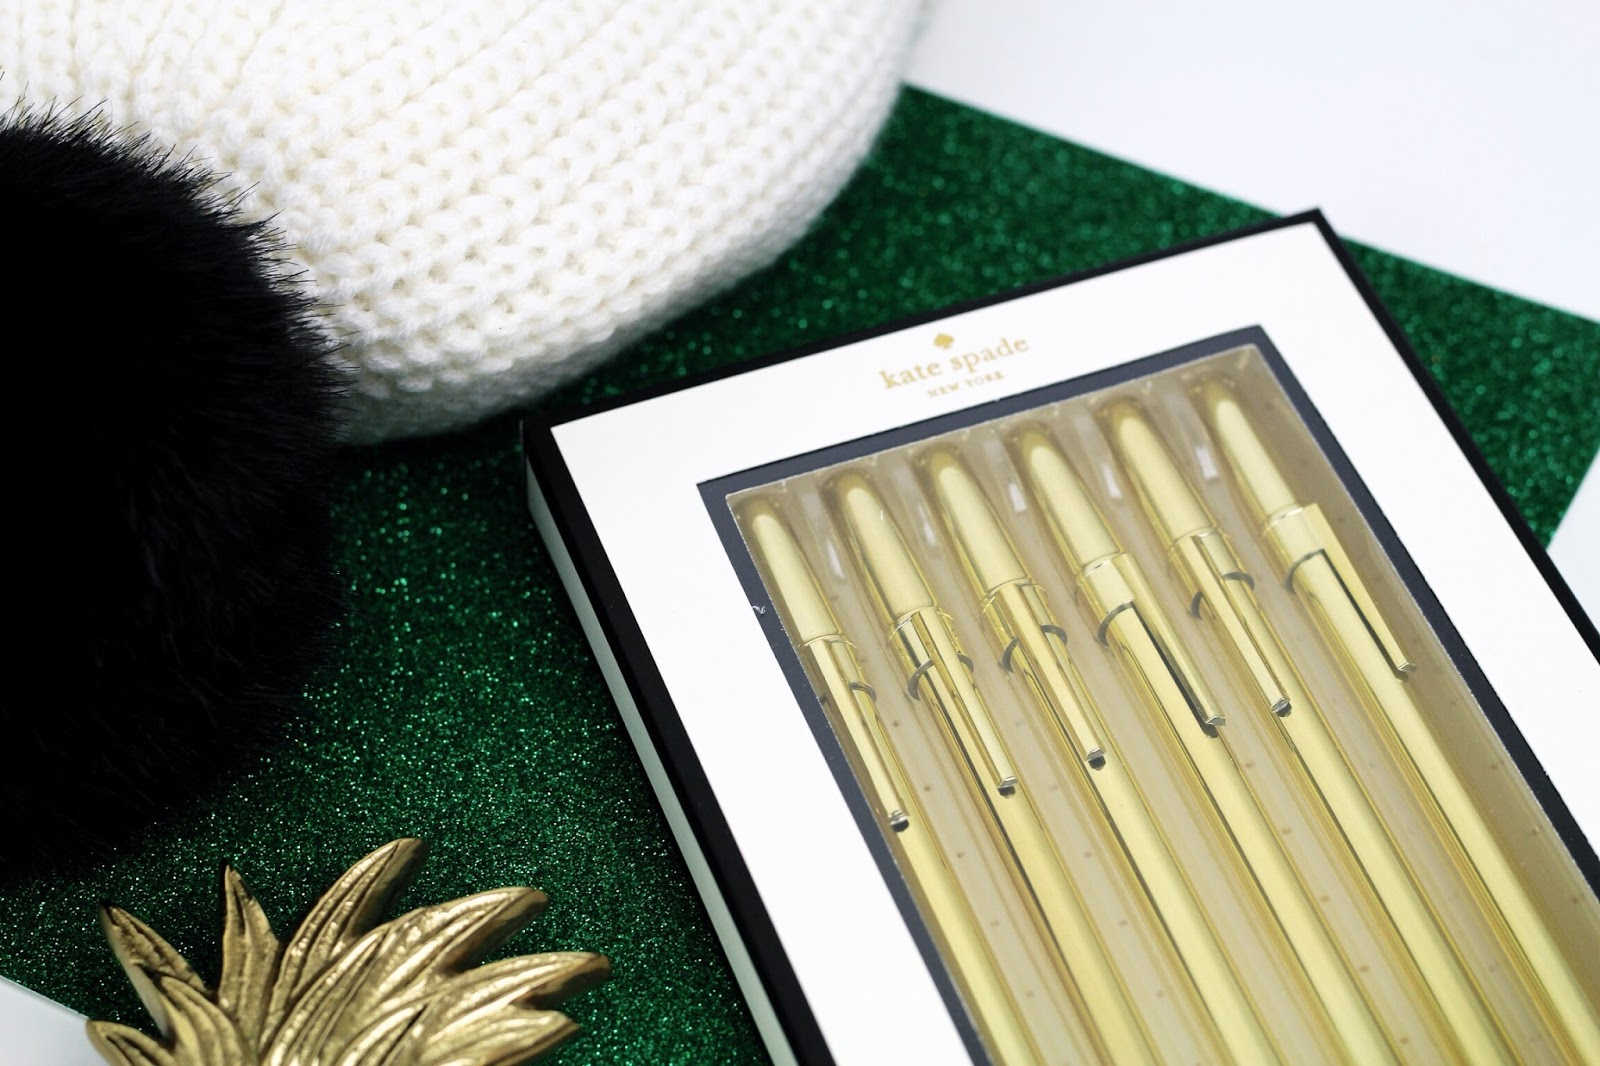 Luxury stationery gold pens by Kate Spade